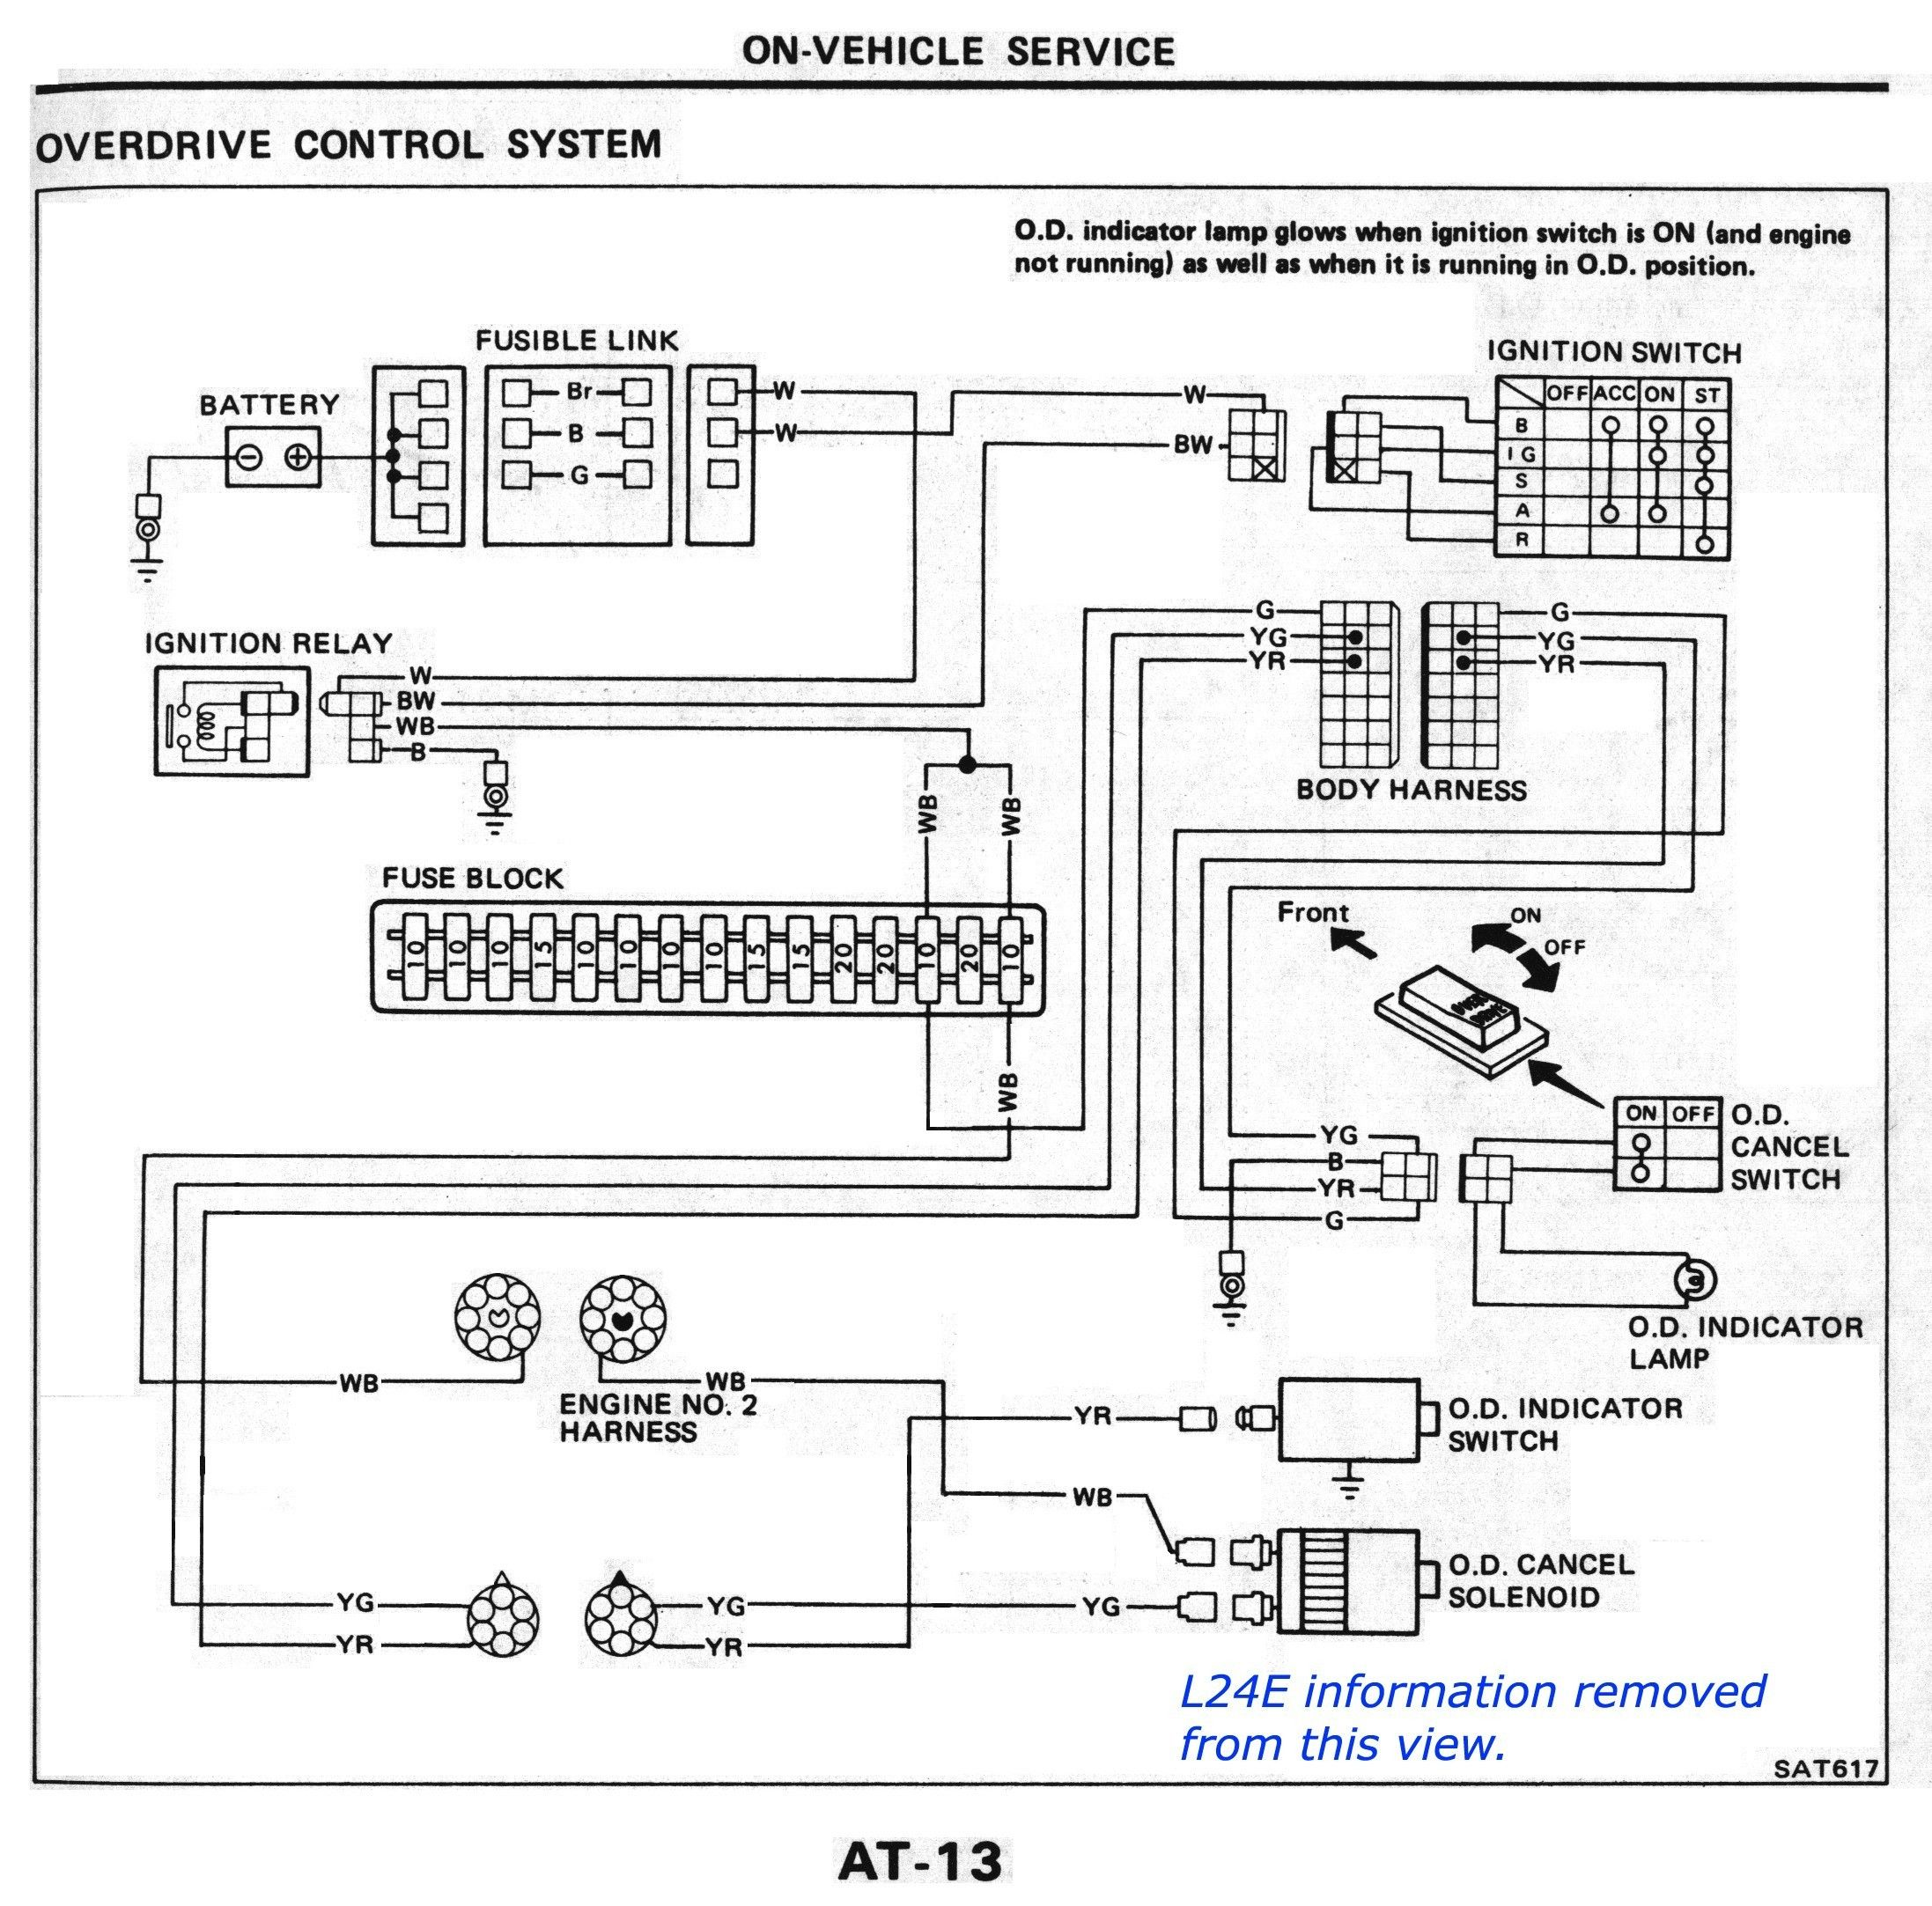 2jz Ecu Wiring Diagram